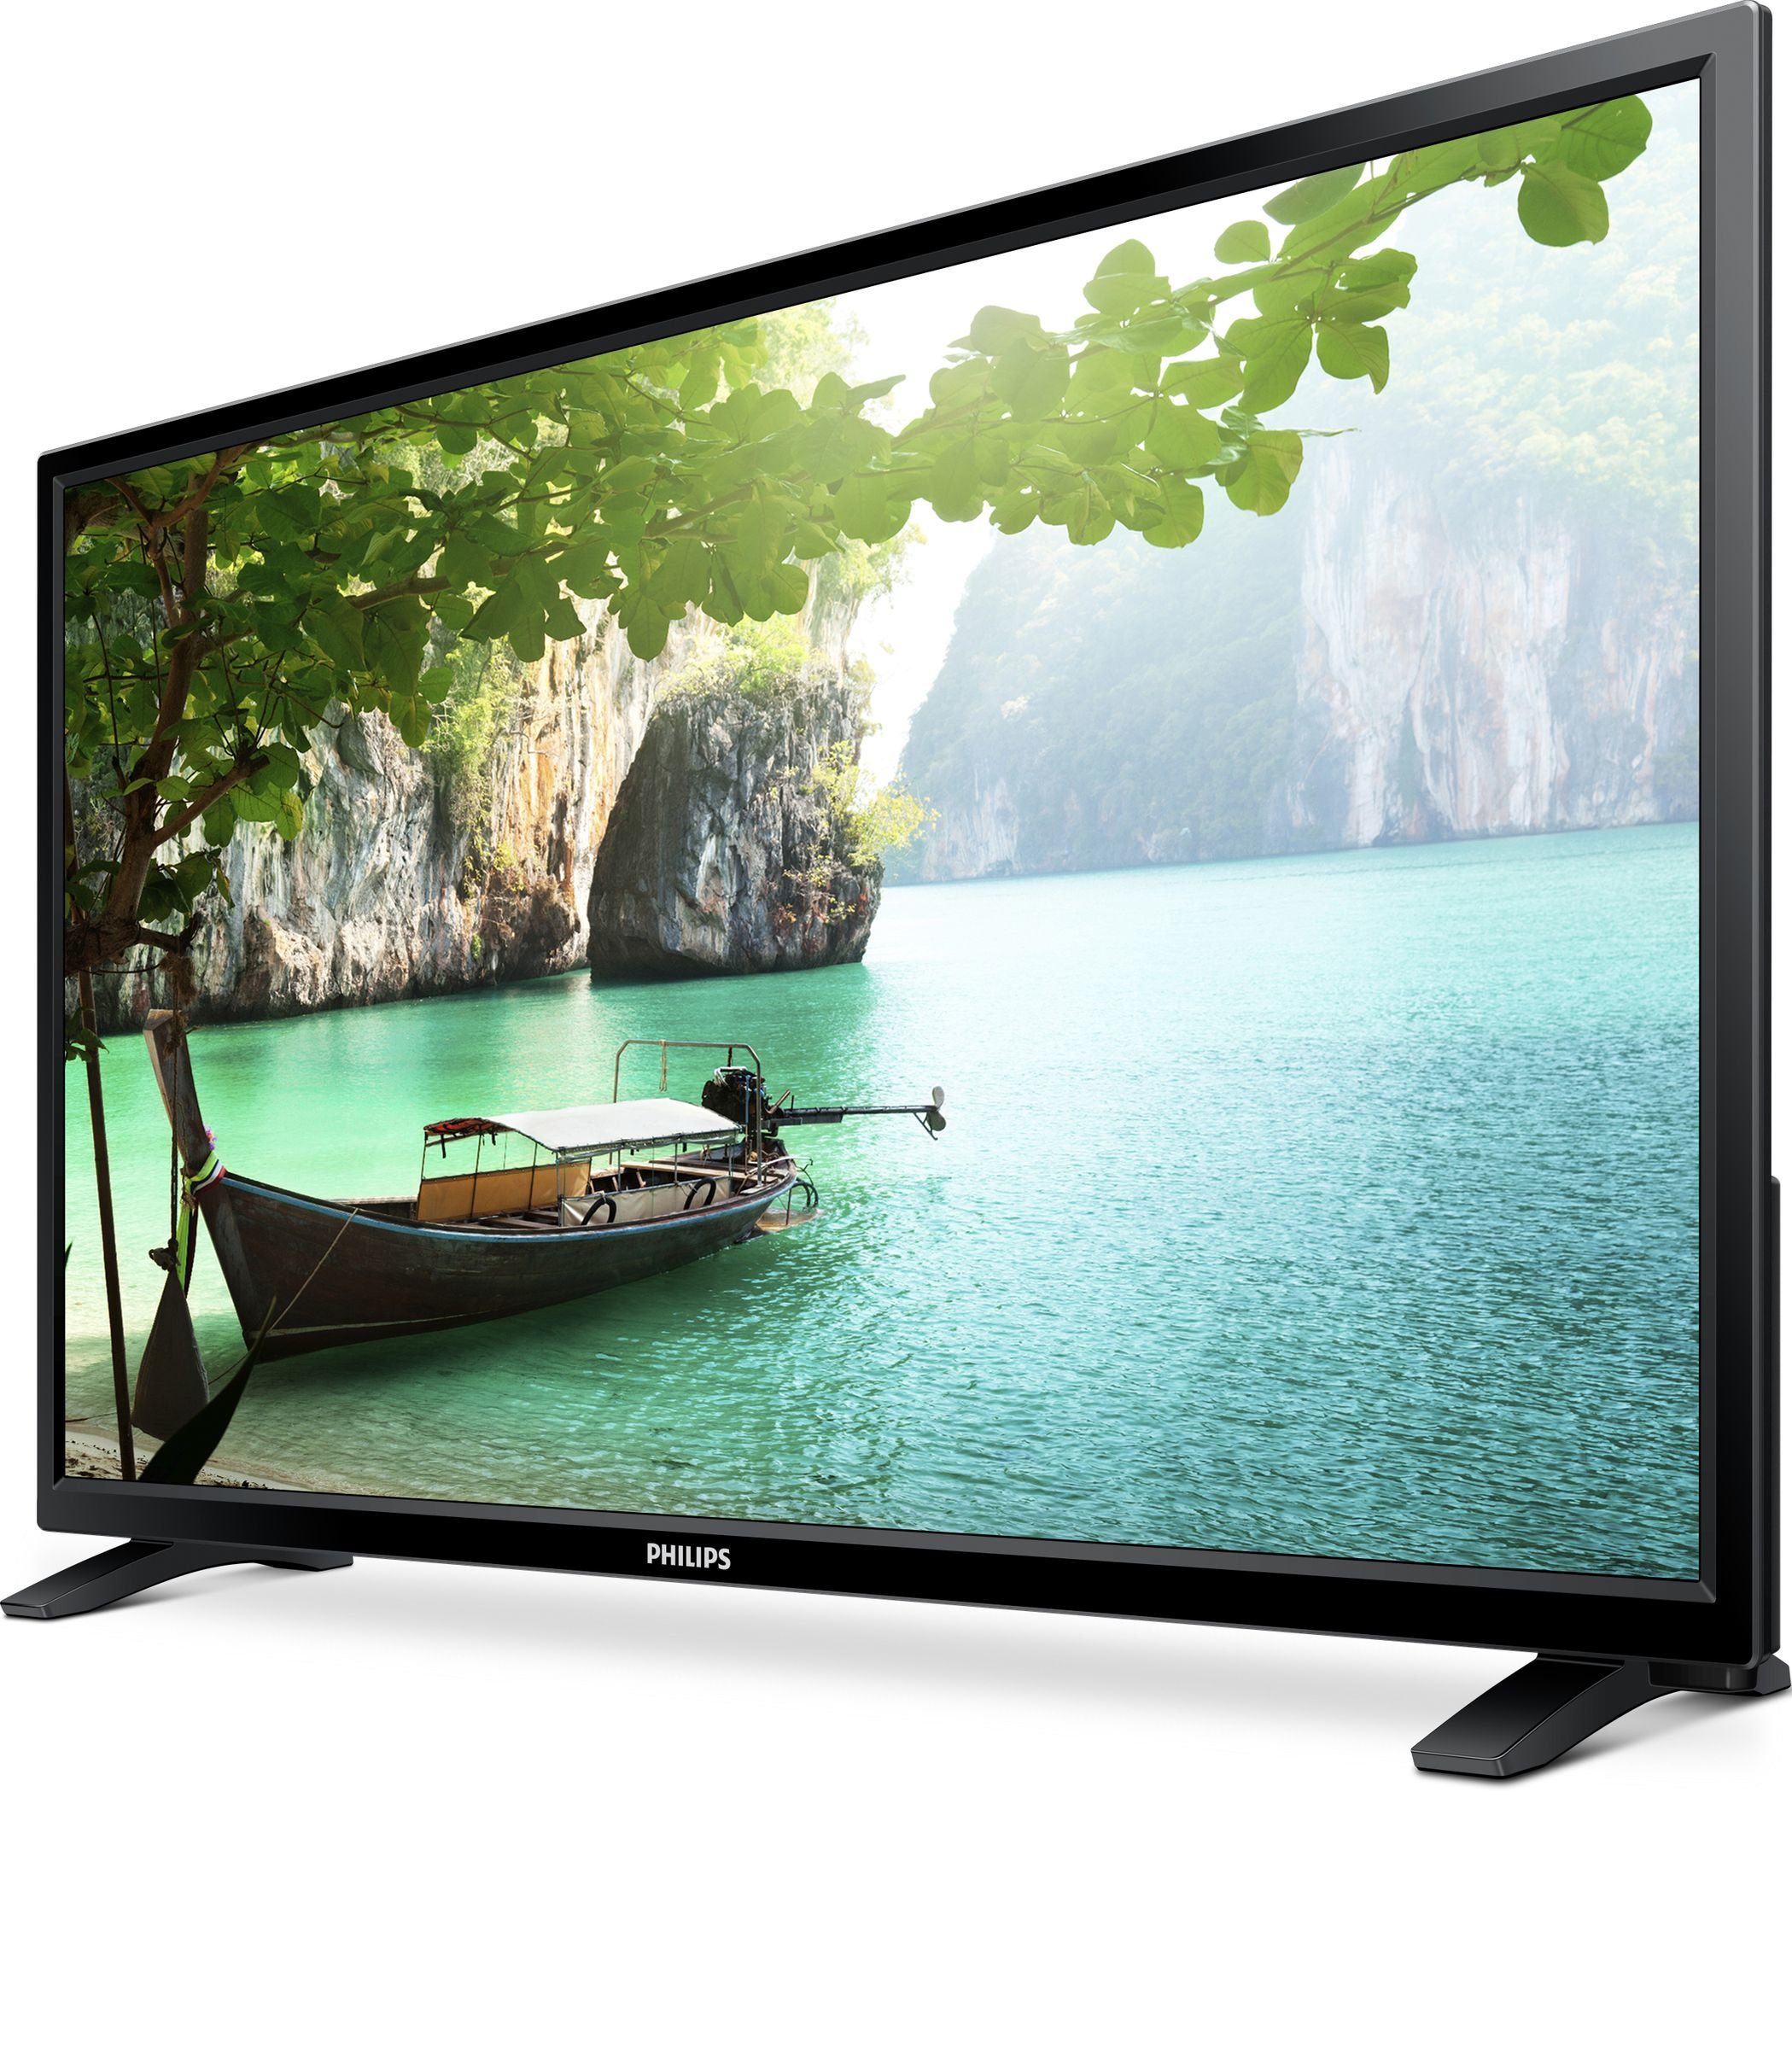 Philips, 24'' LED-LCD TV, 24PFL3603/F7